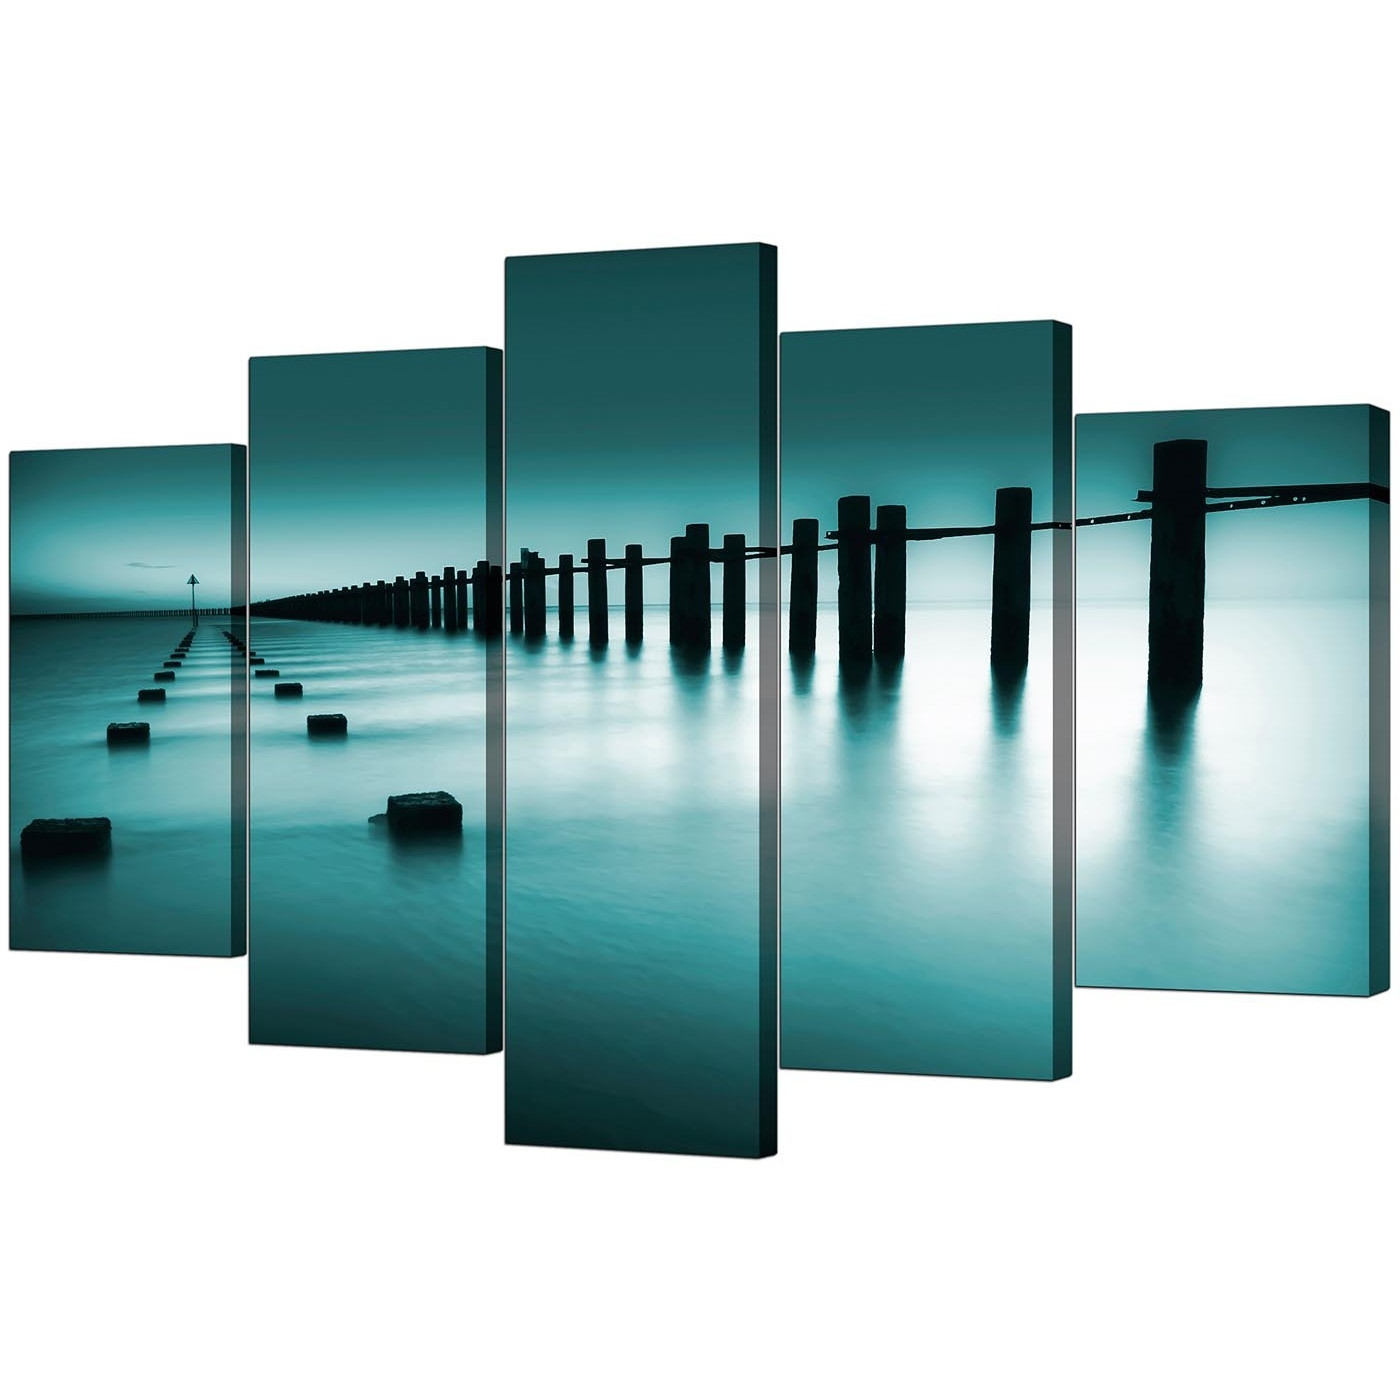 Newest Extra Large Sea Canvas Wall Art Five Panel In Teal For Large Teal Wall Art (View 11 of 15)